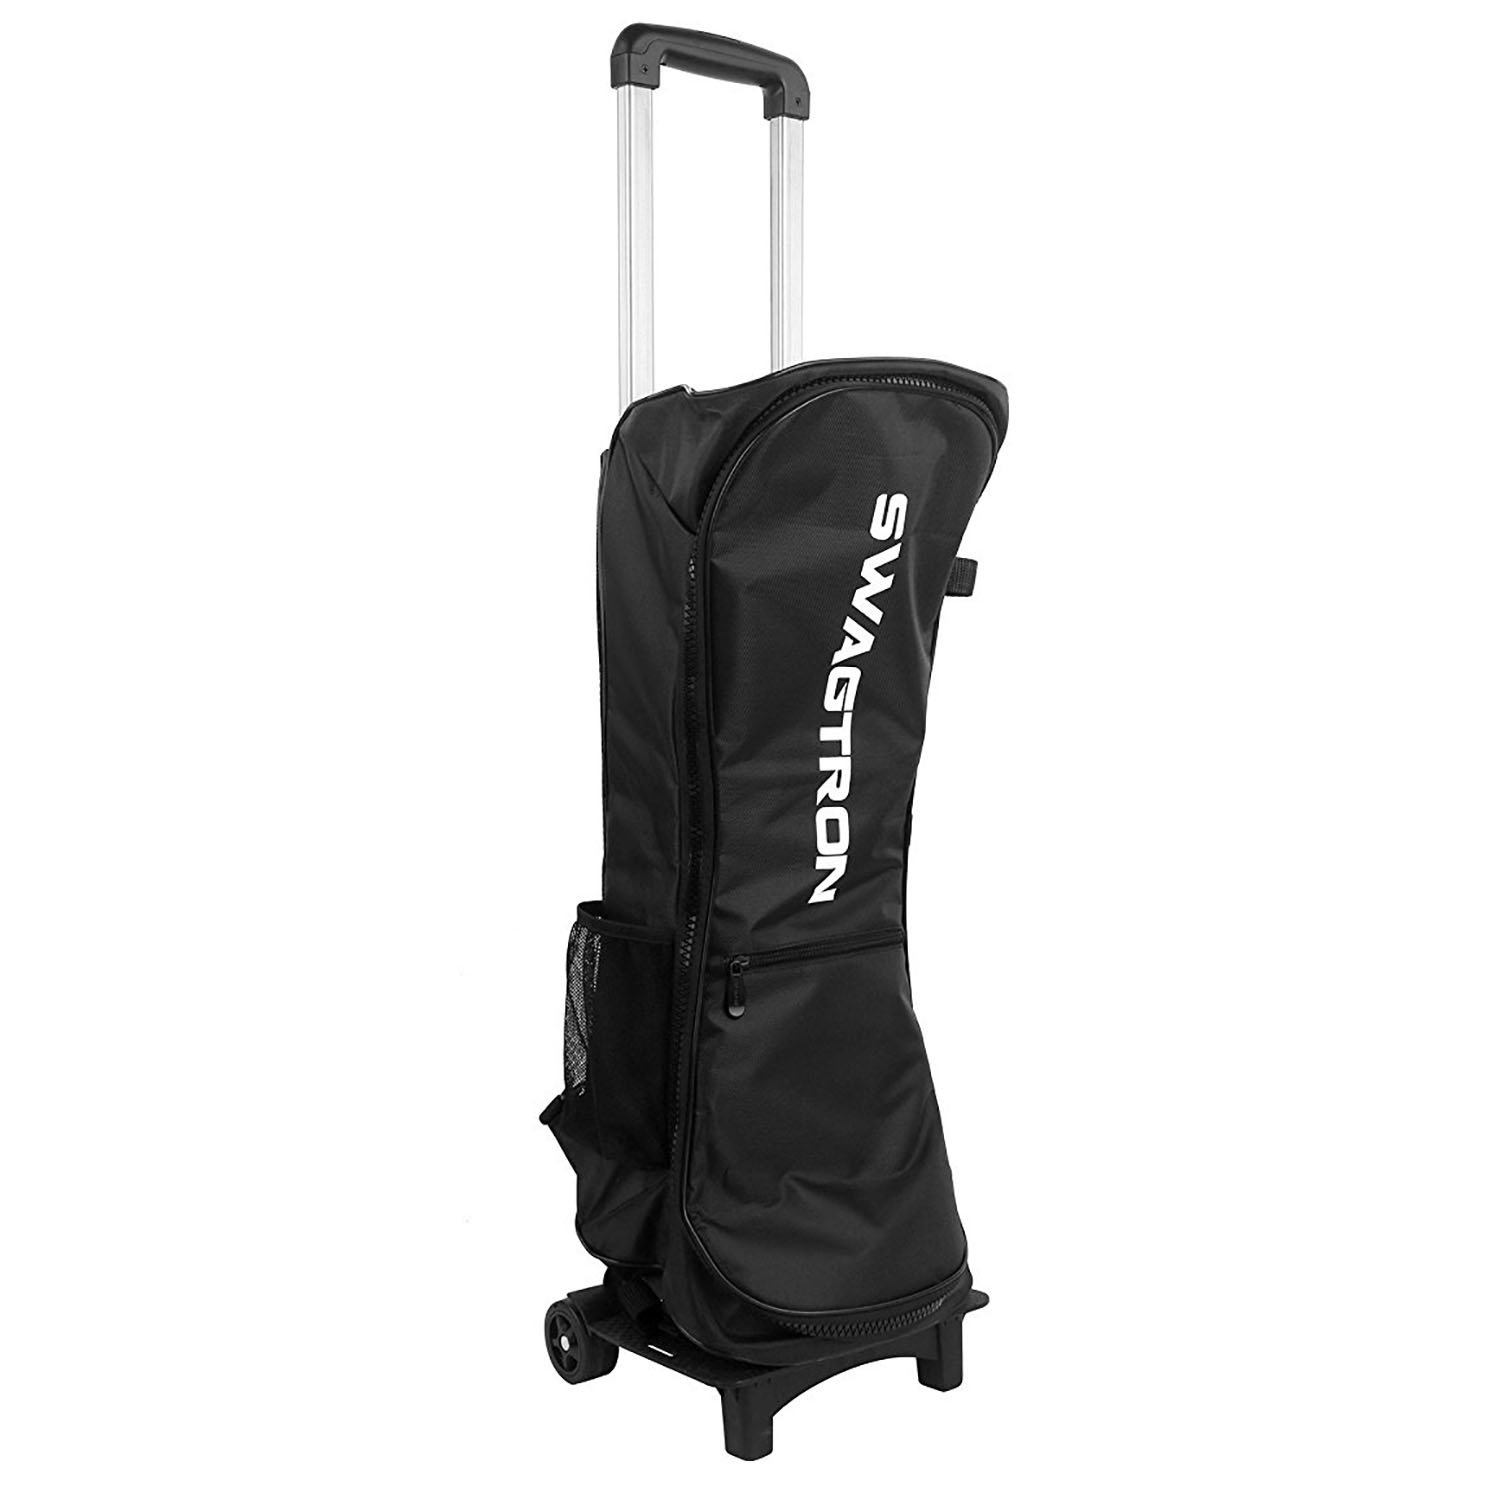 Swagtron Hoverboard Carrying Bag & Case- Fits T5 and X1 and X2 Self-balancing scooters - The Bag for All Your Swag